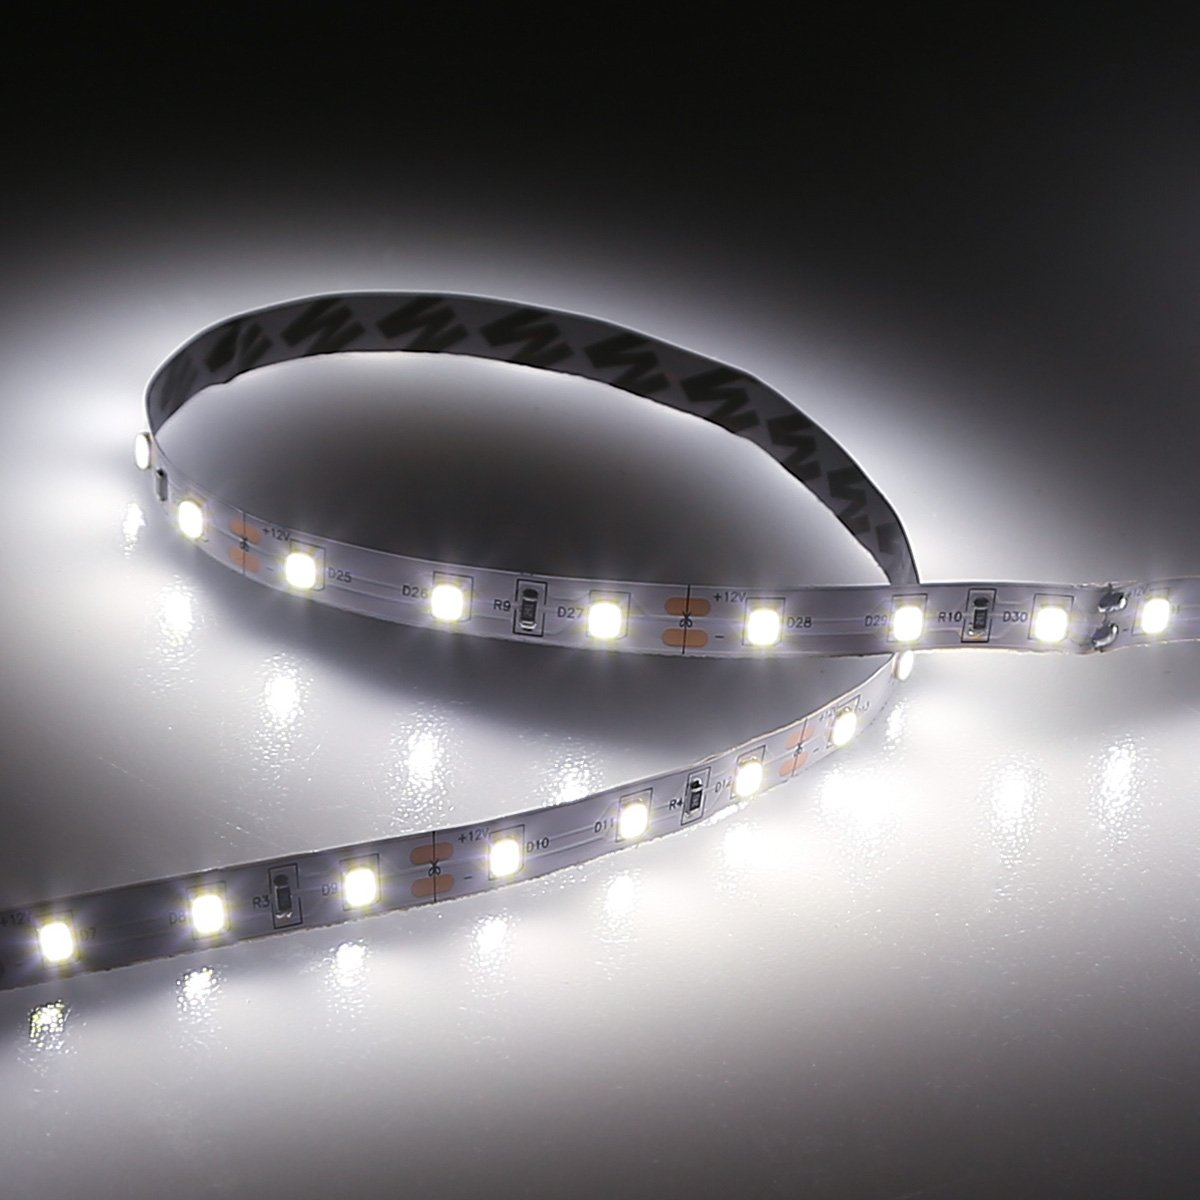 Amazon le 164ft led flexible light strip 300 units smd 2835 amazon le 164ft led flexible light strip 300 units smd 2835 leds 12v dc non waterproof light strips led ribbon diy christmas holiday home kitchen aloadofball Images